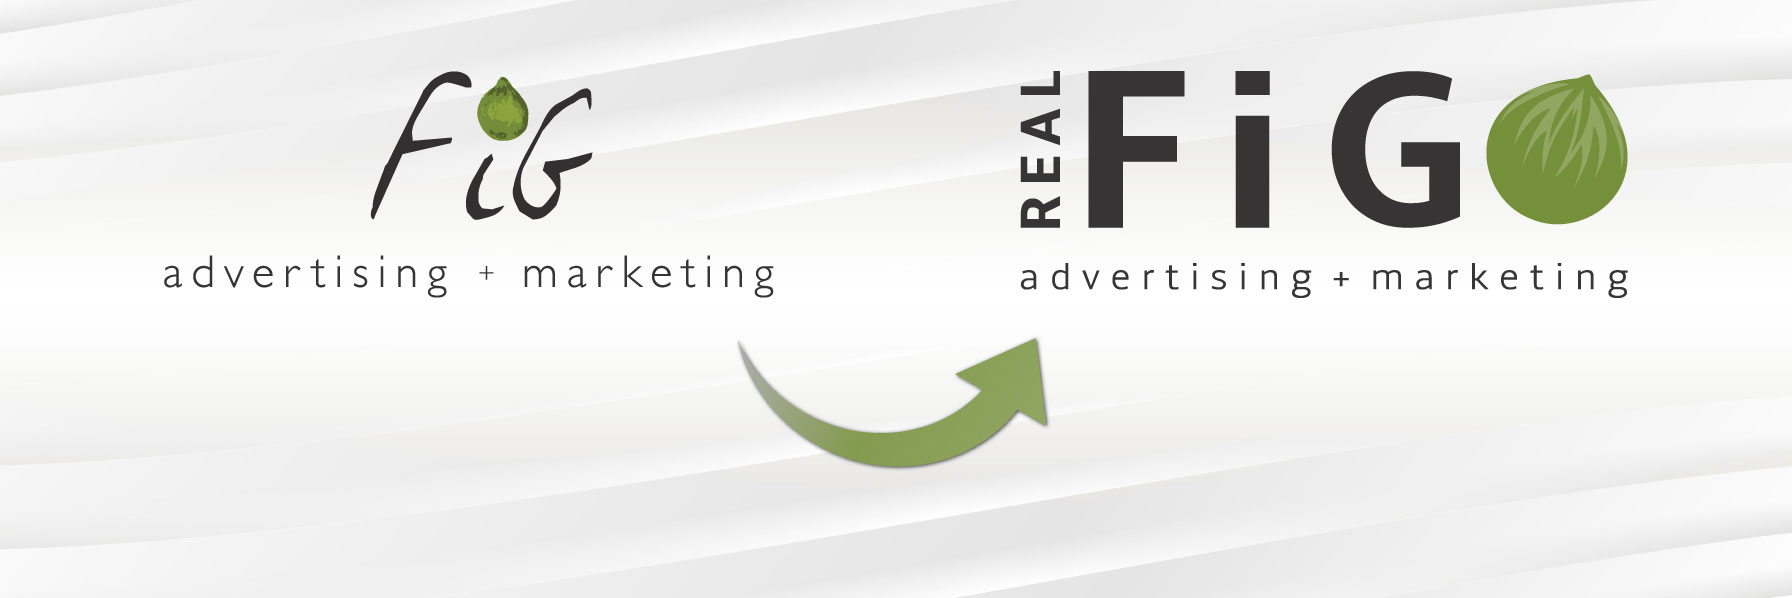 Real FiG - Real Marketing Results